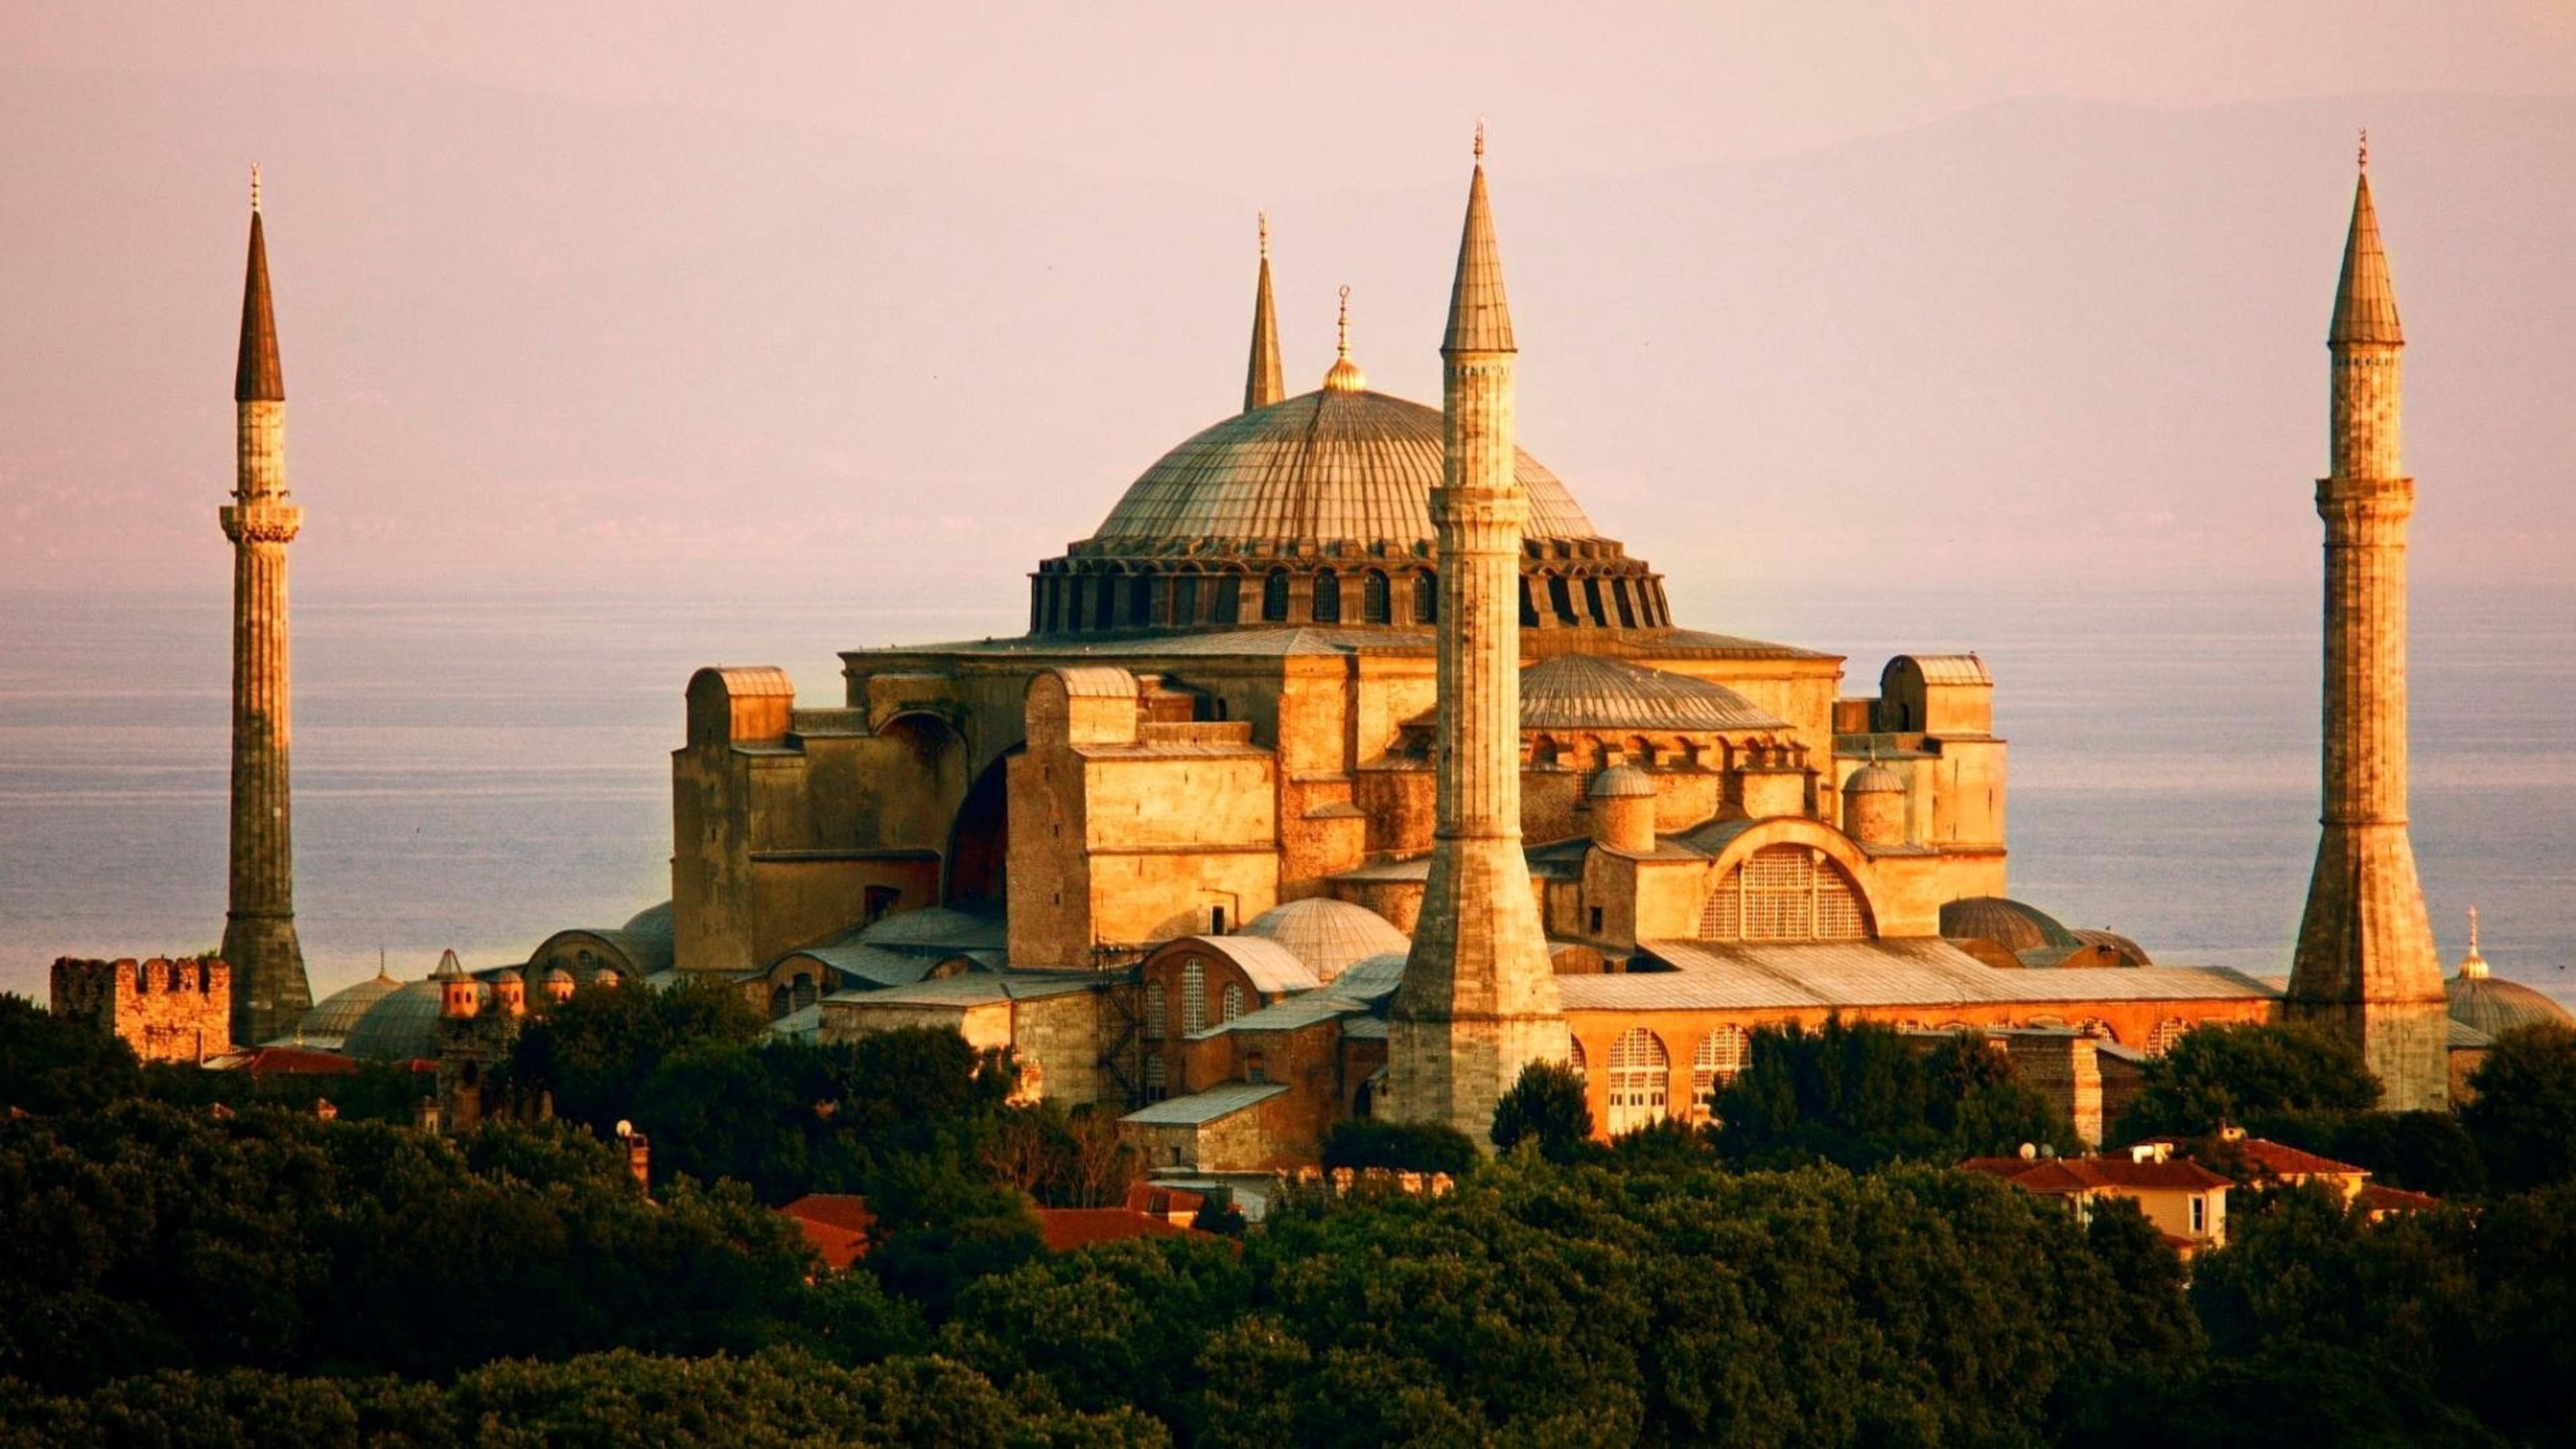 Temple of the Holy Wisdom of God (Turkey)